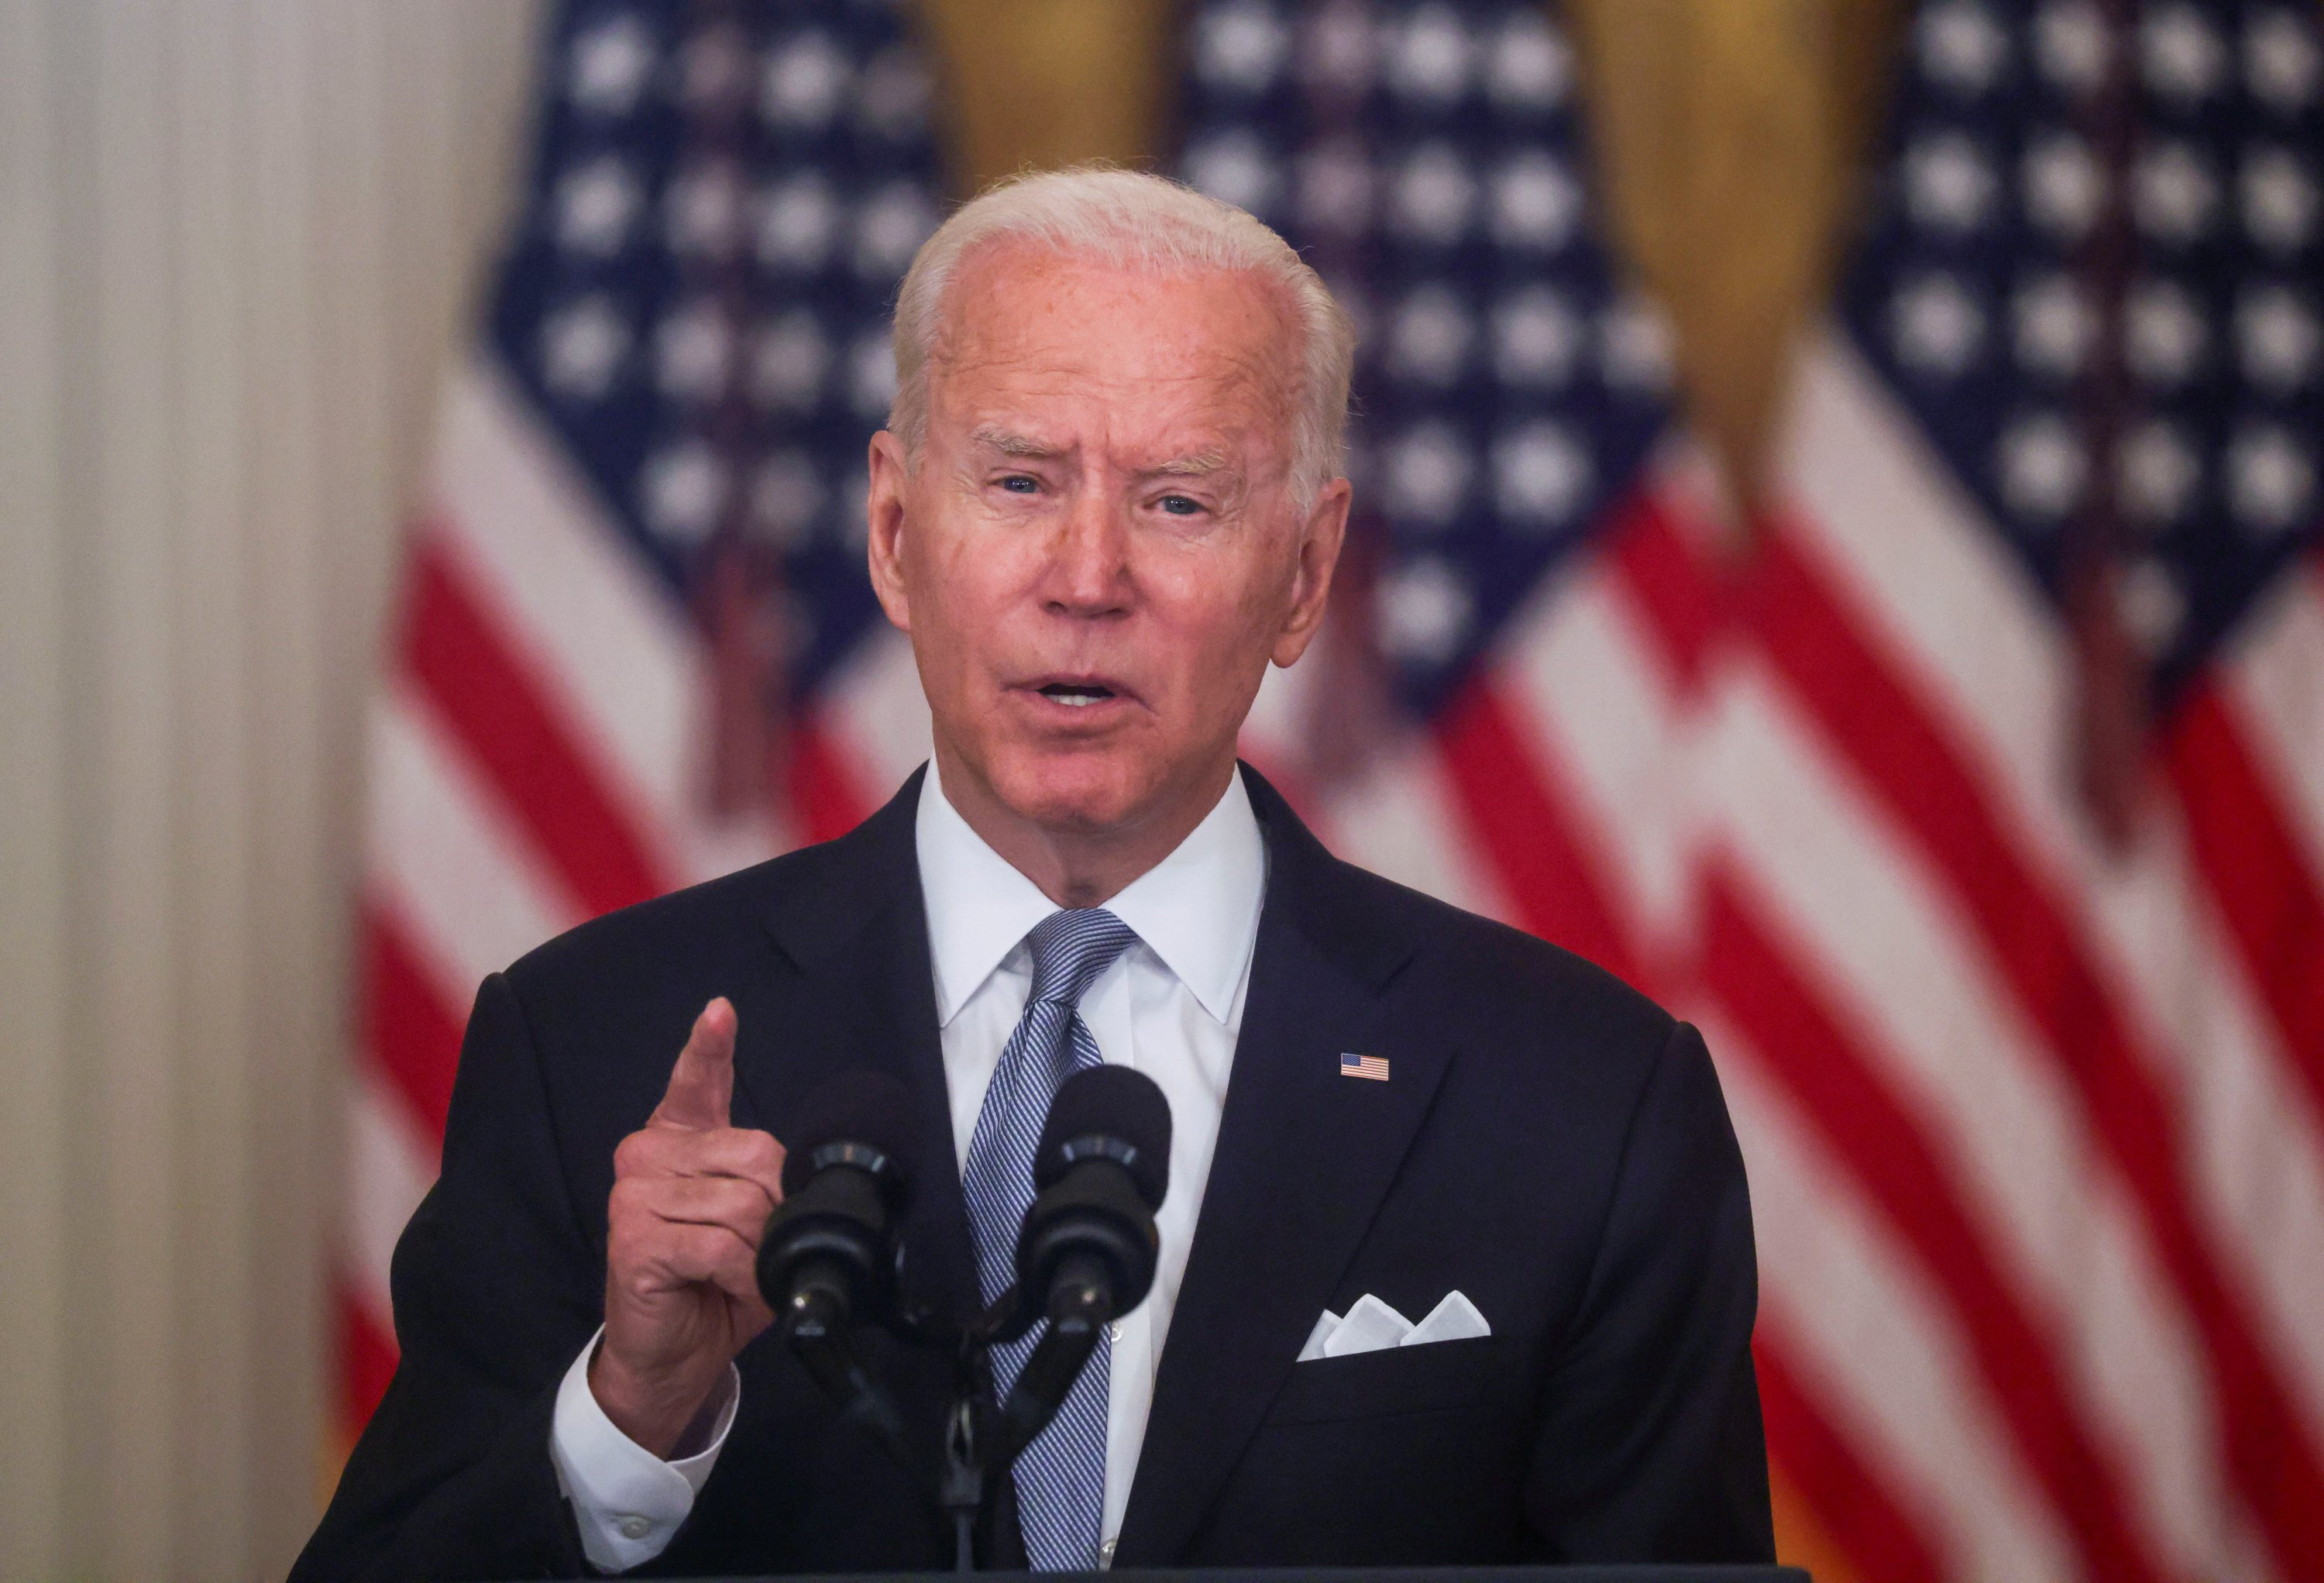 U.S. President Joe Biden delivers remarks on the crisis in Afghanistan during a speech in the East Room at the White House in Washington, U.S., Aug. 16, 2021. (Reuters Photo)